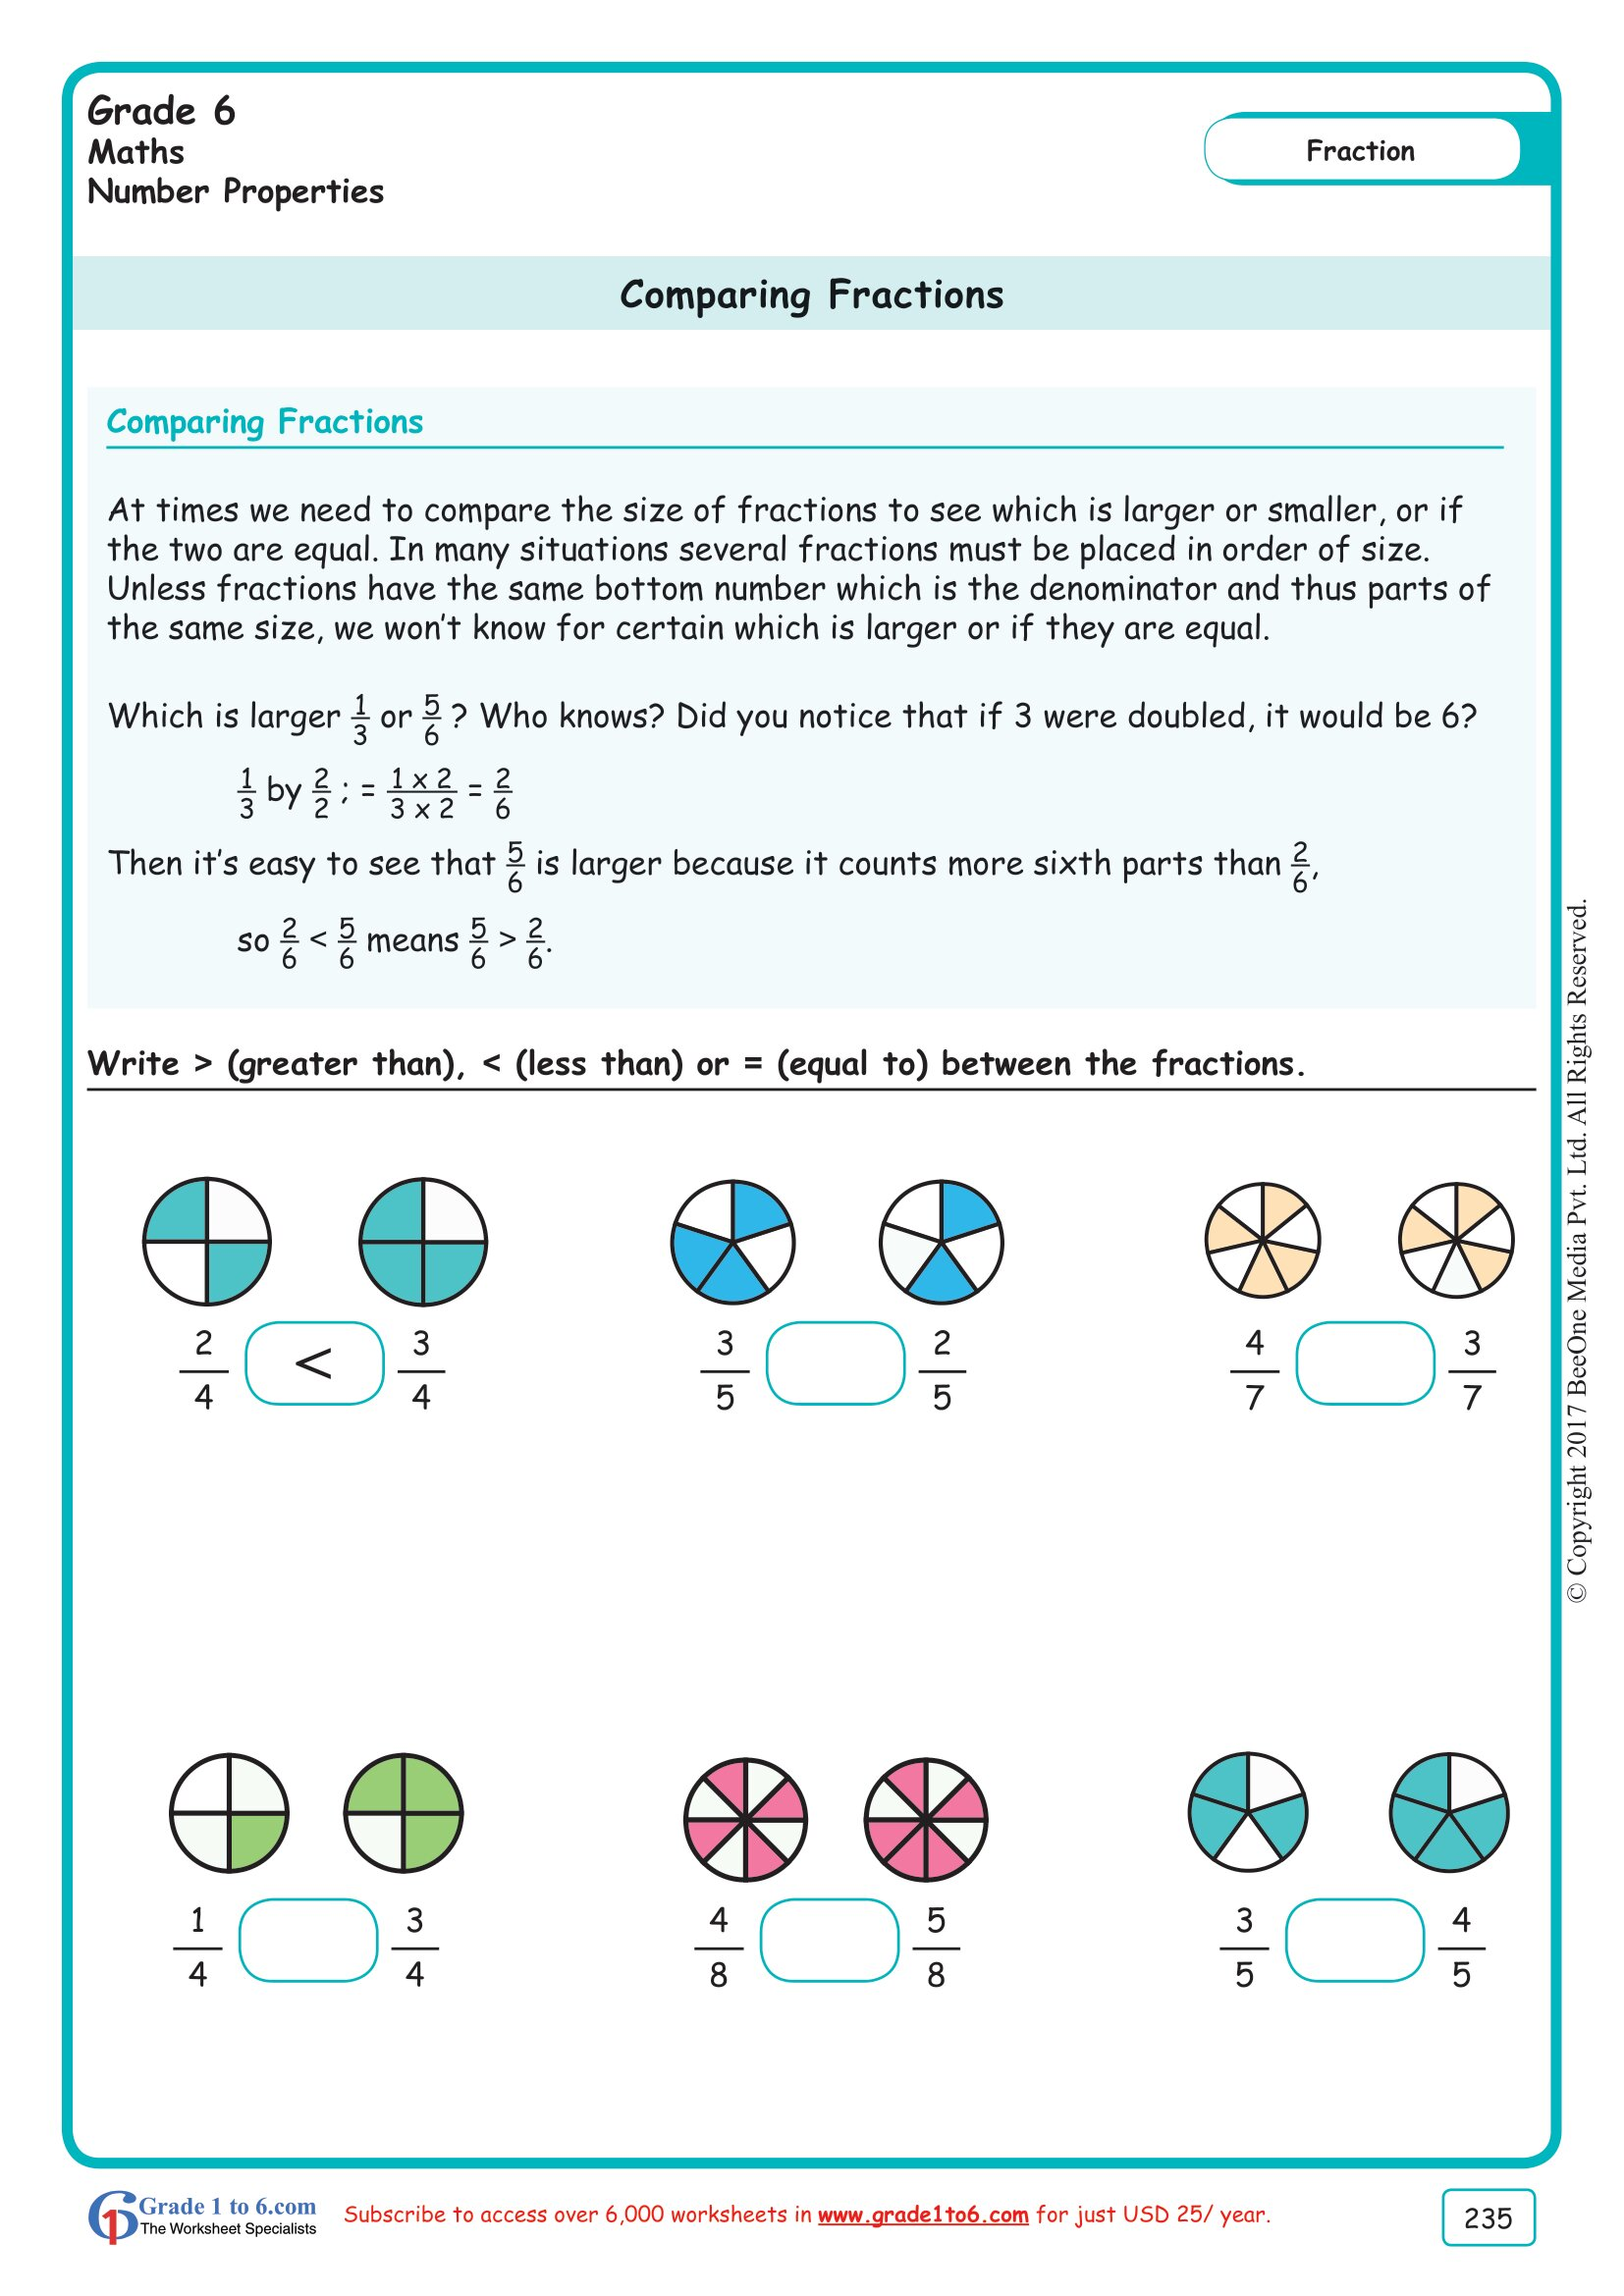 Grade 6 Class Six Comparing Fractions Worksheets